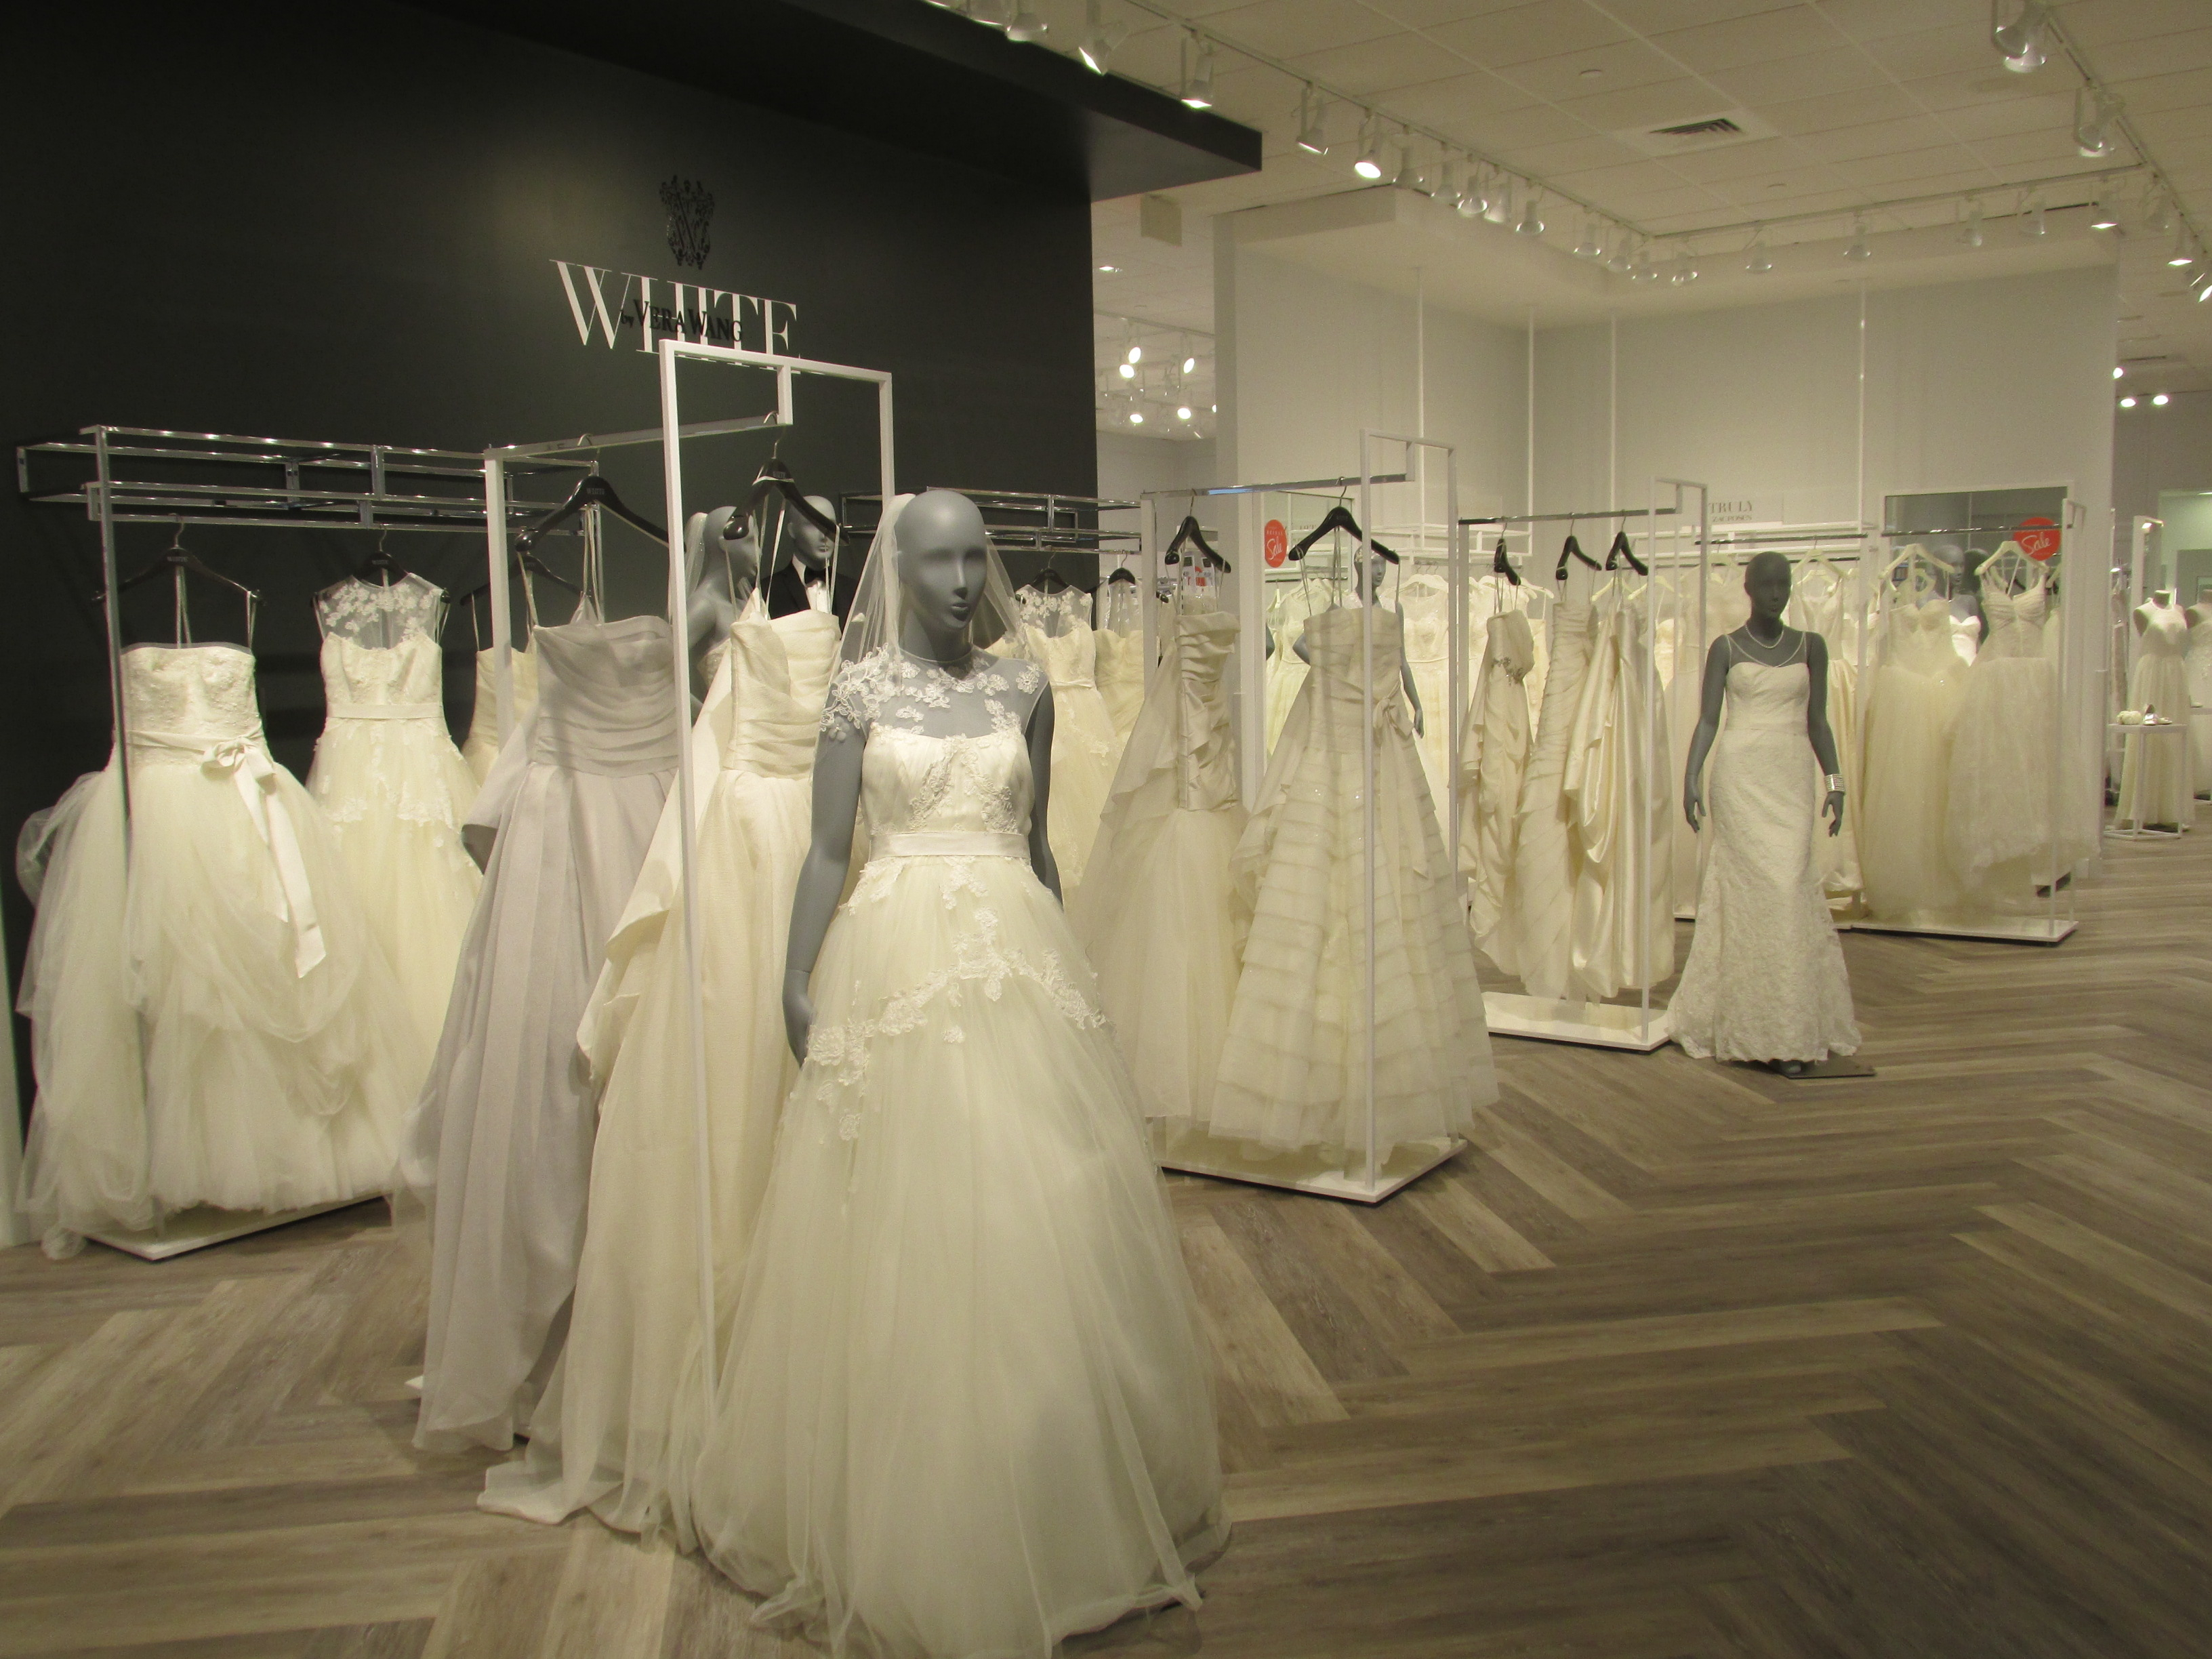 Fantastic Bridal University Avenue Ma Bridal Mapquest Bridal University Avenue Ma Bridal David S Bridal Locations Ga David S Bridal Locations Ct inspiration Davids Bridal Locations